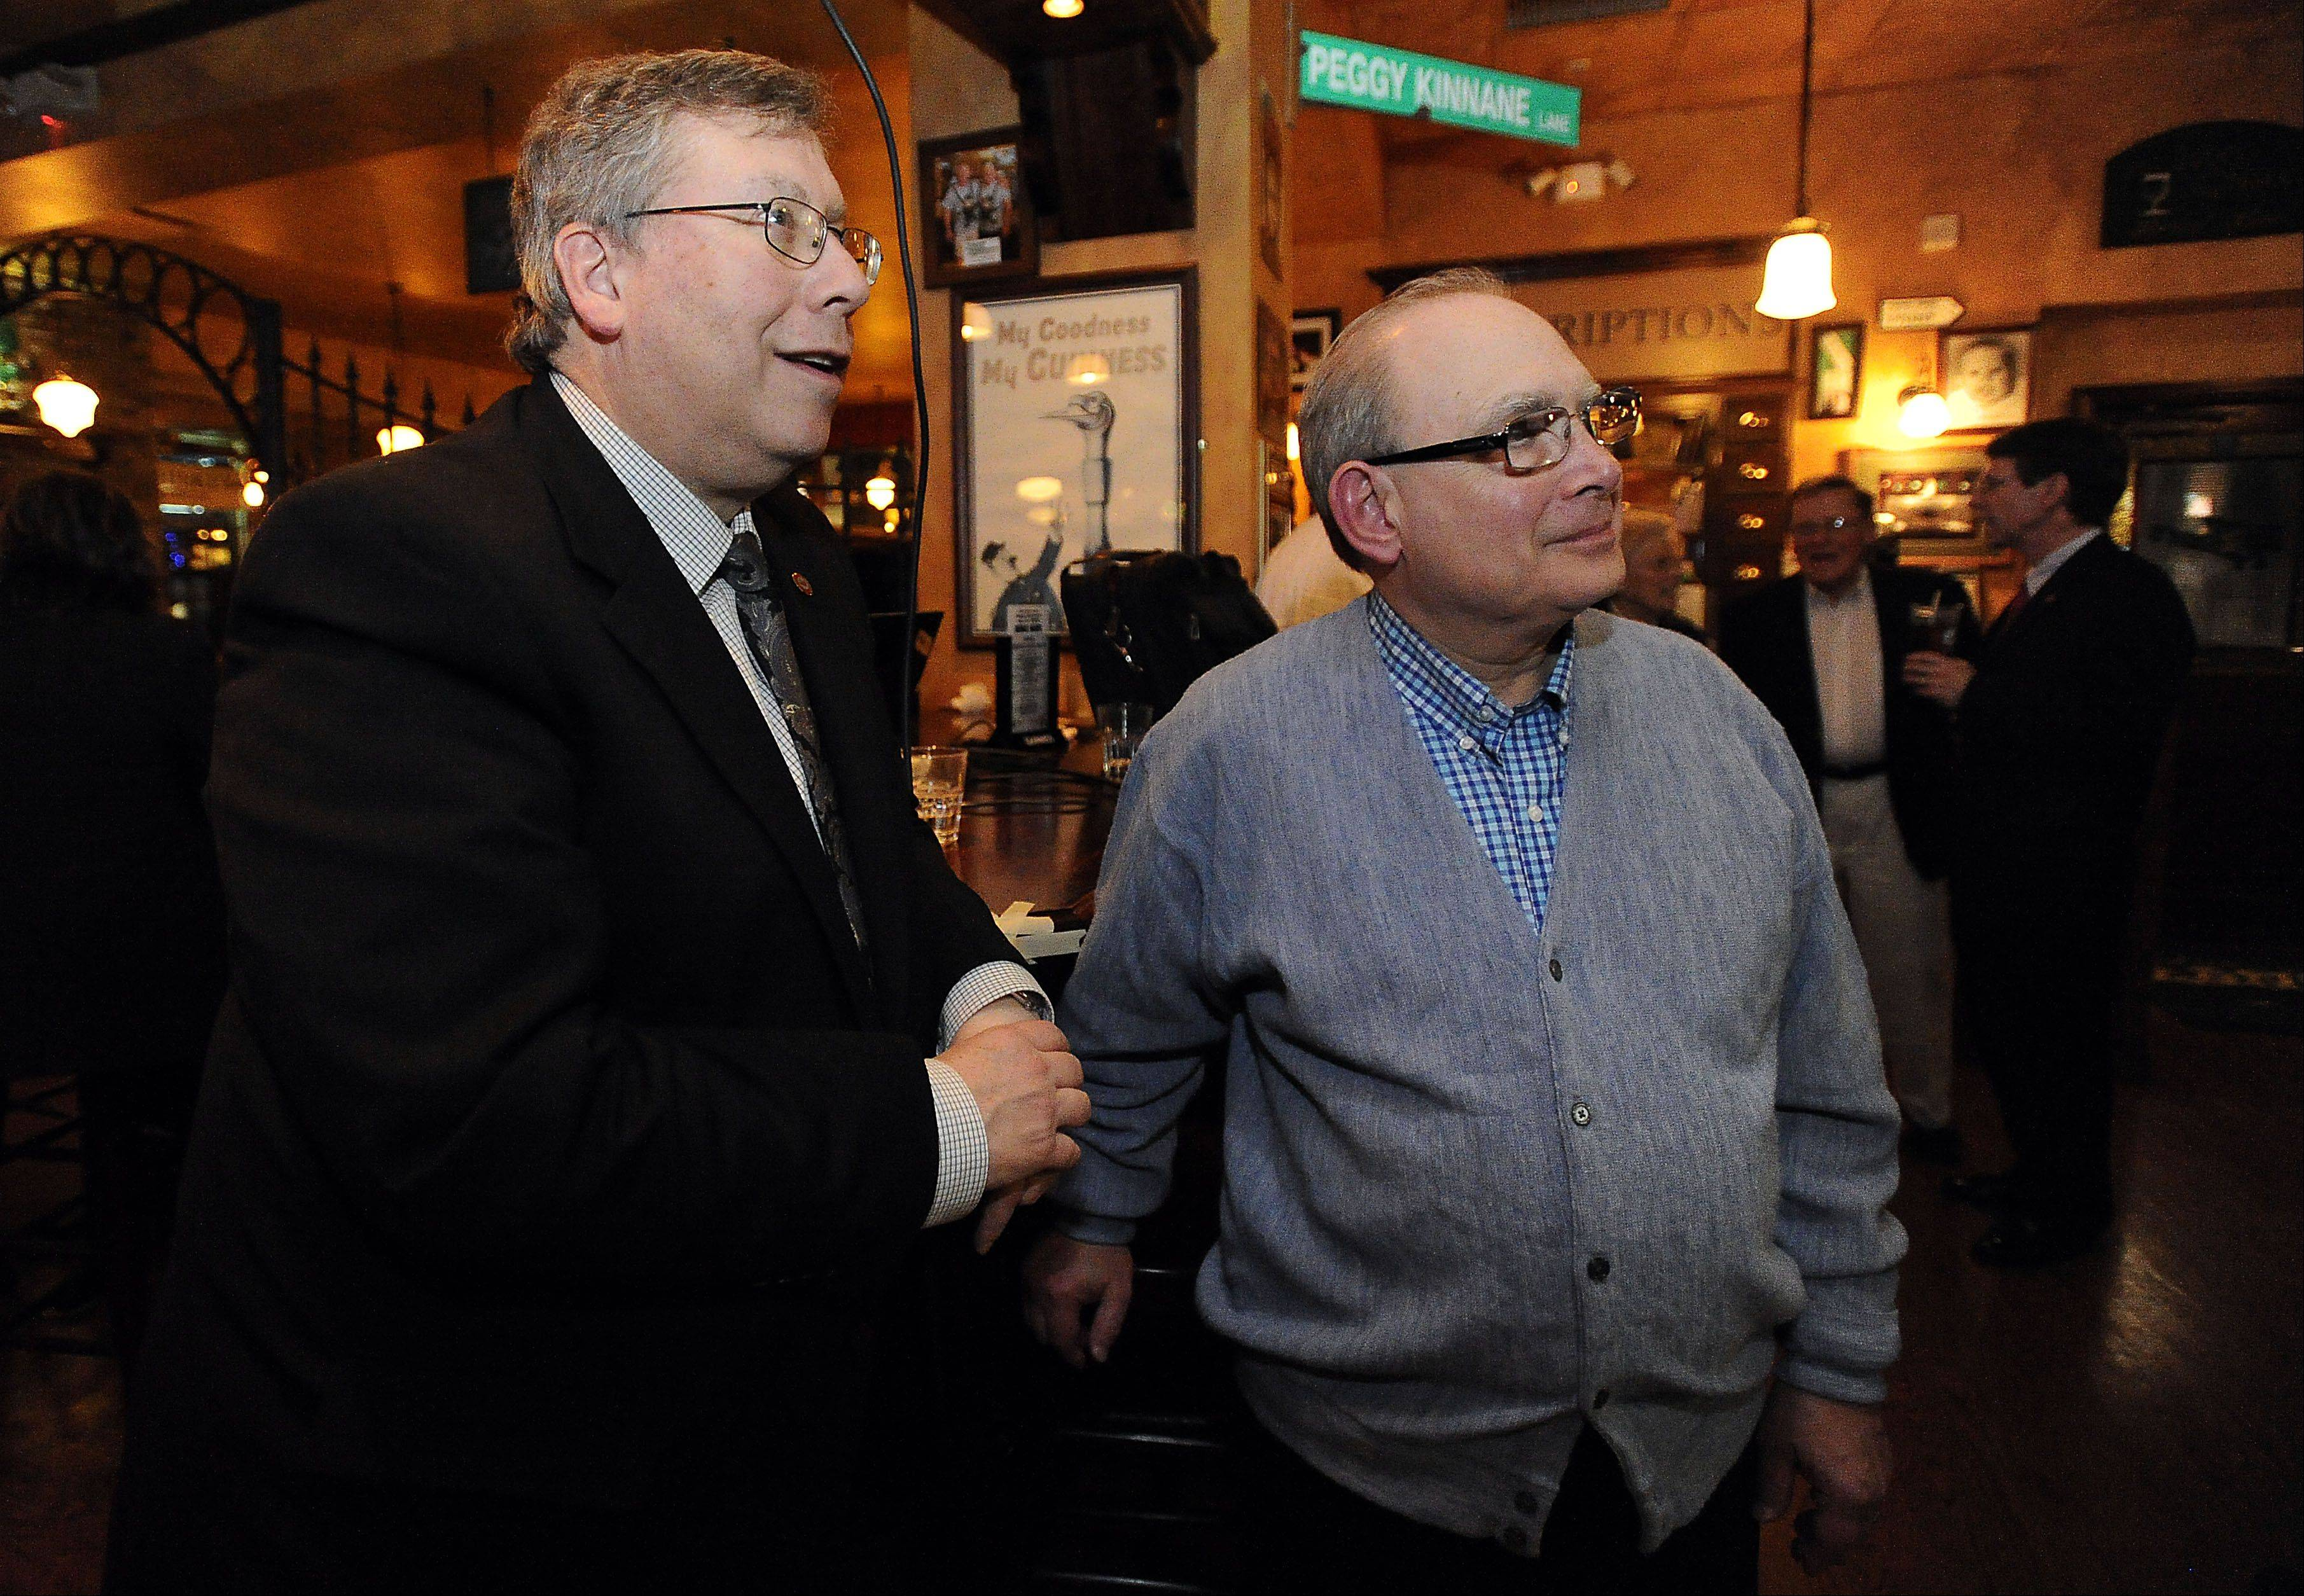 Bert Rosenberg, left, and Norm Breyer watch the polls late into the evening.